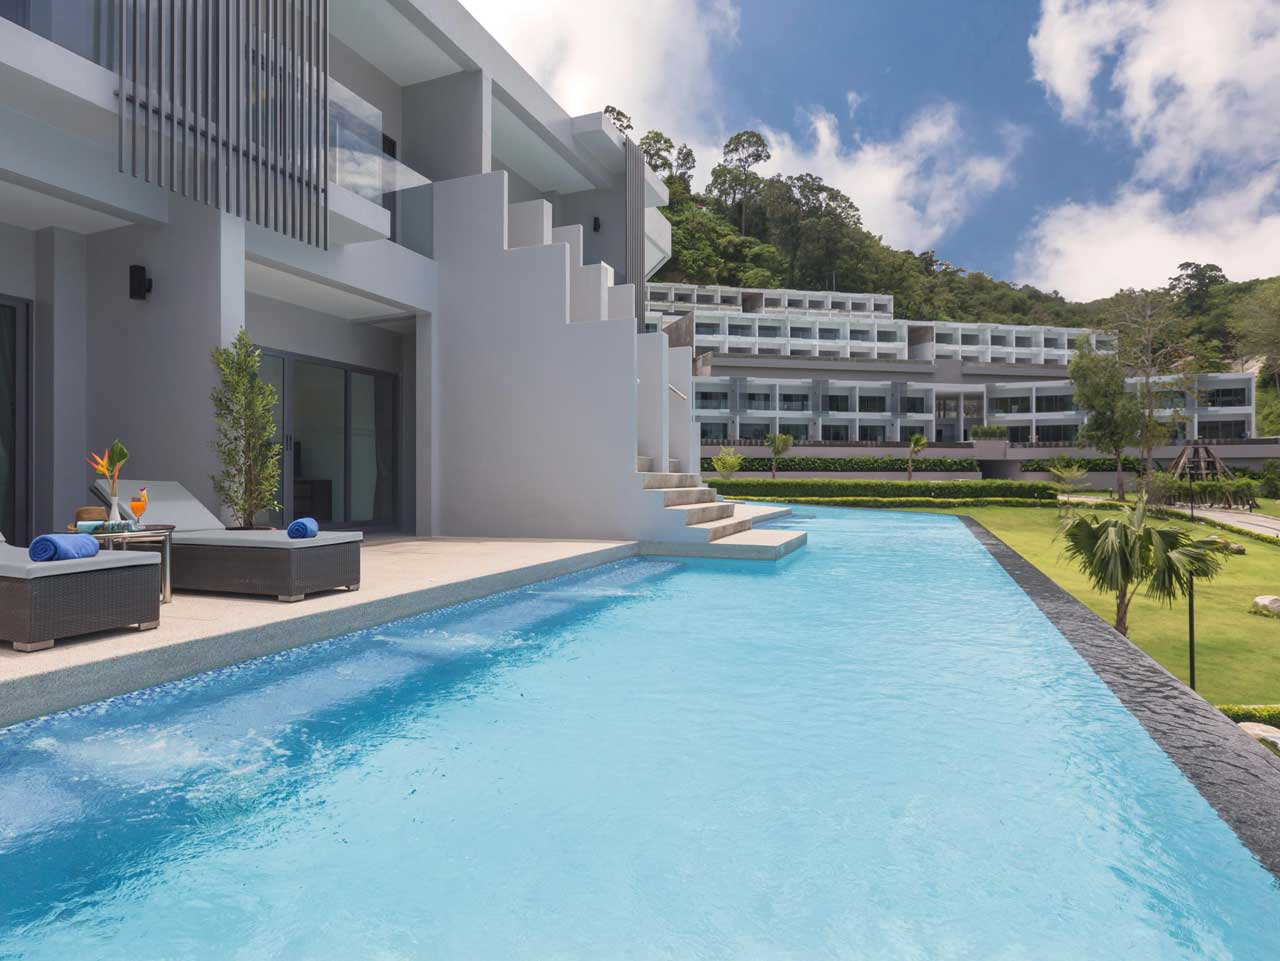 Phuket Holiday Service Real Estate Projects Phuket Thailand About Patong Bay Hill Resort2